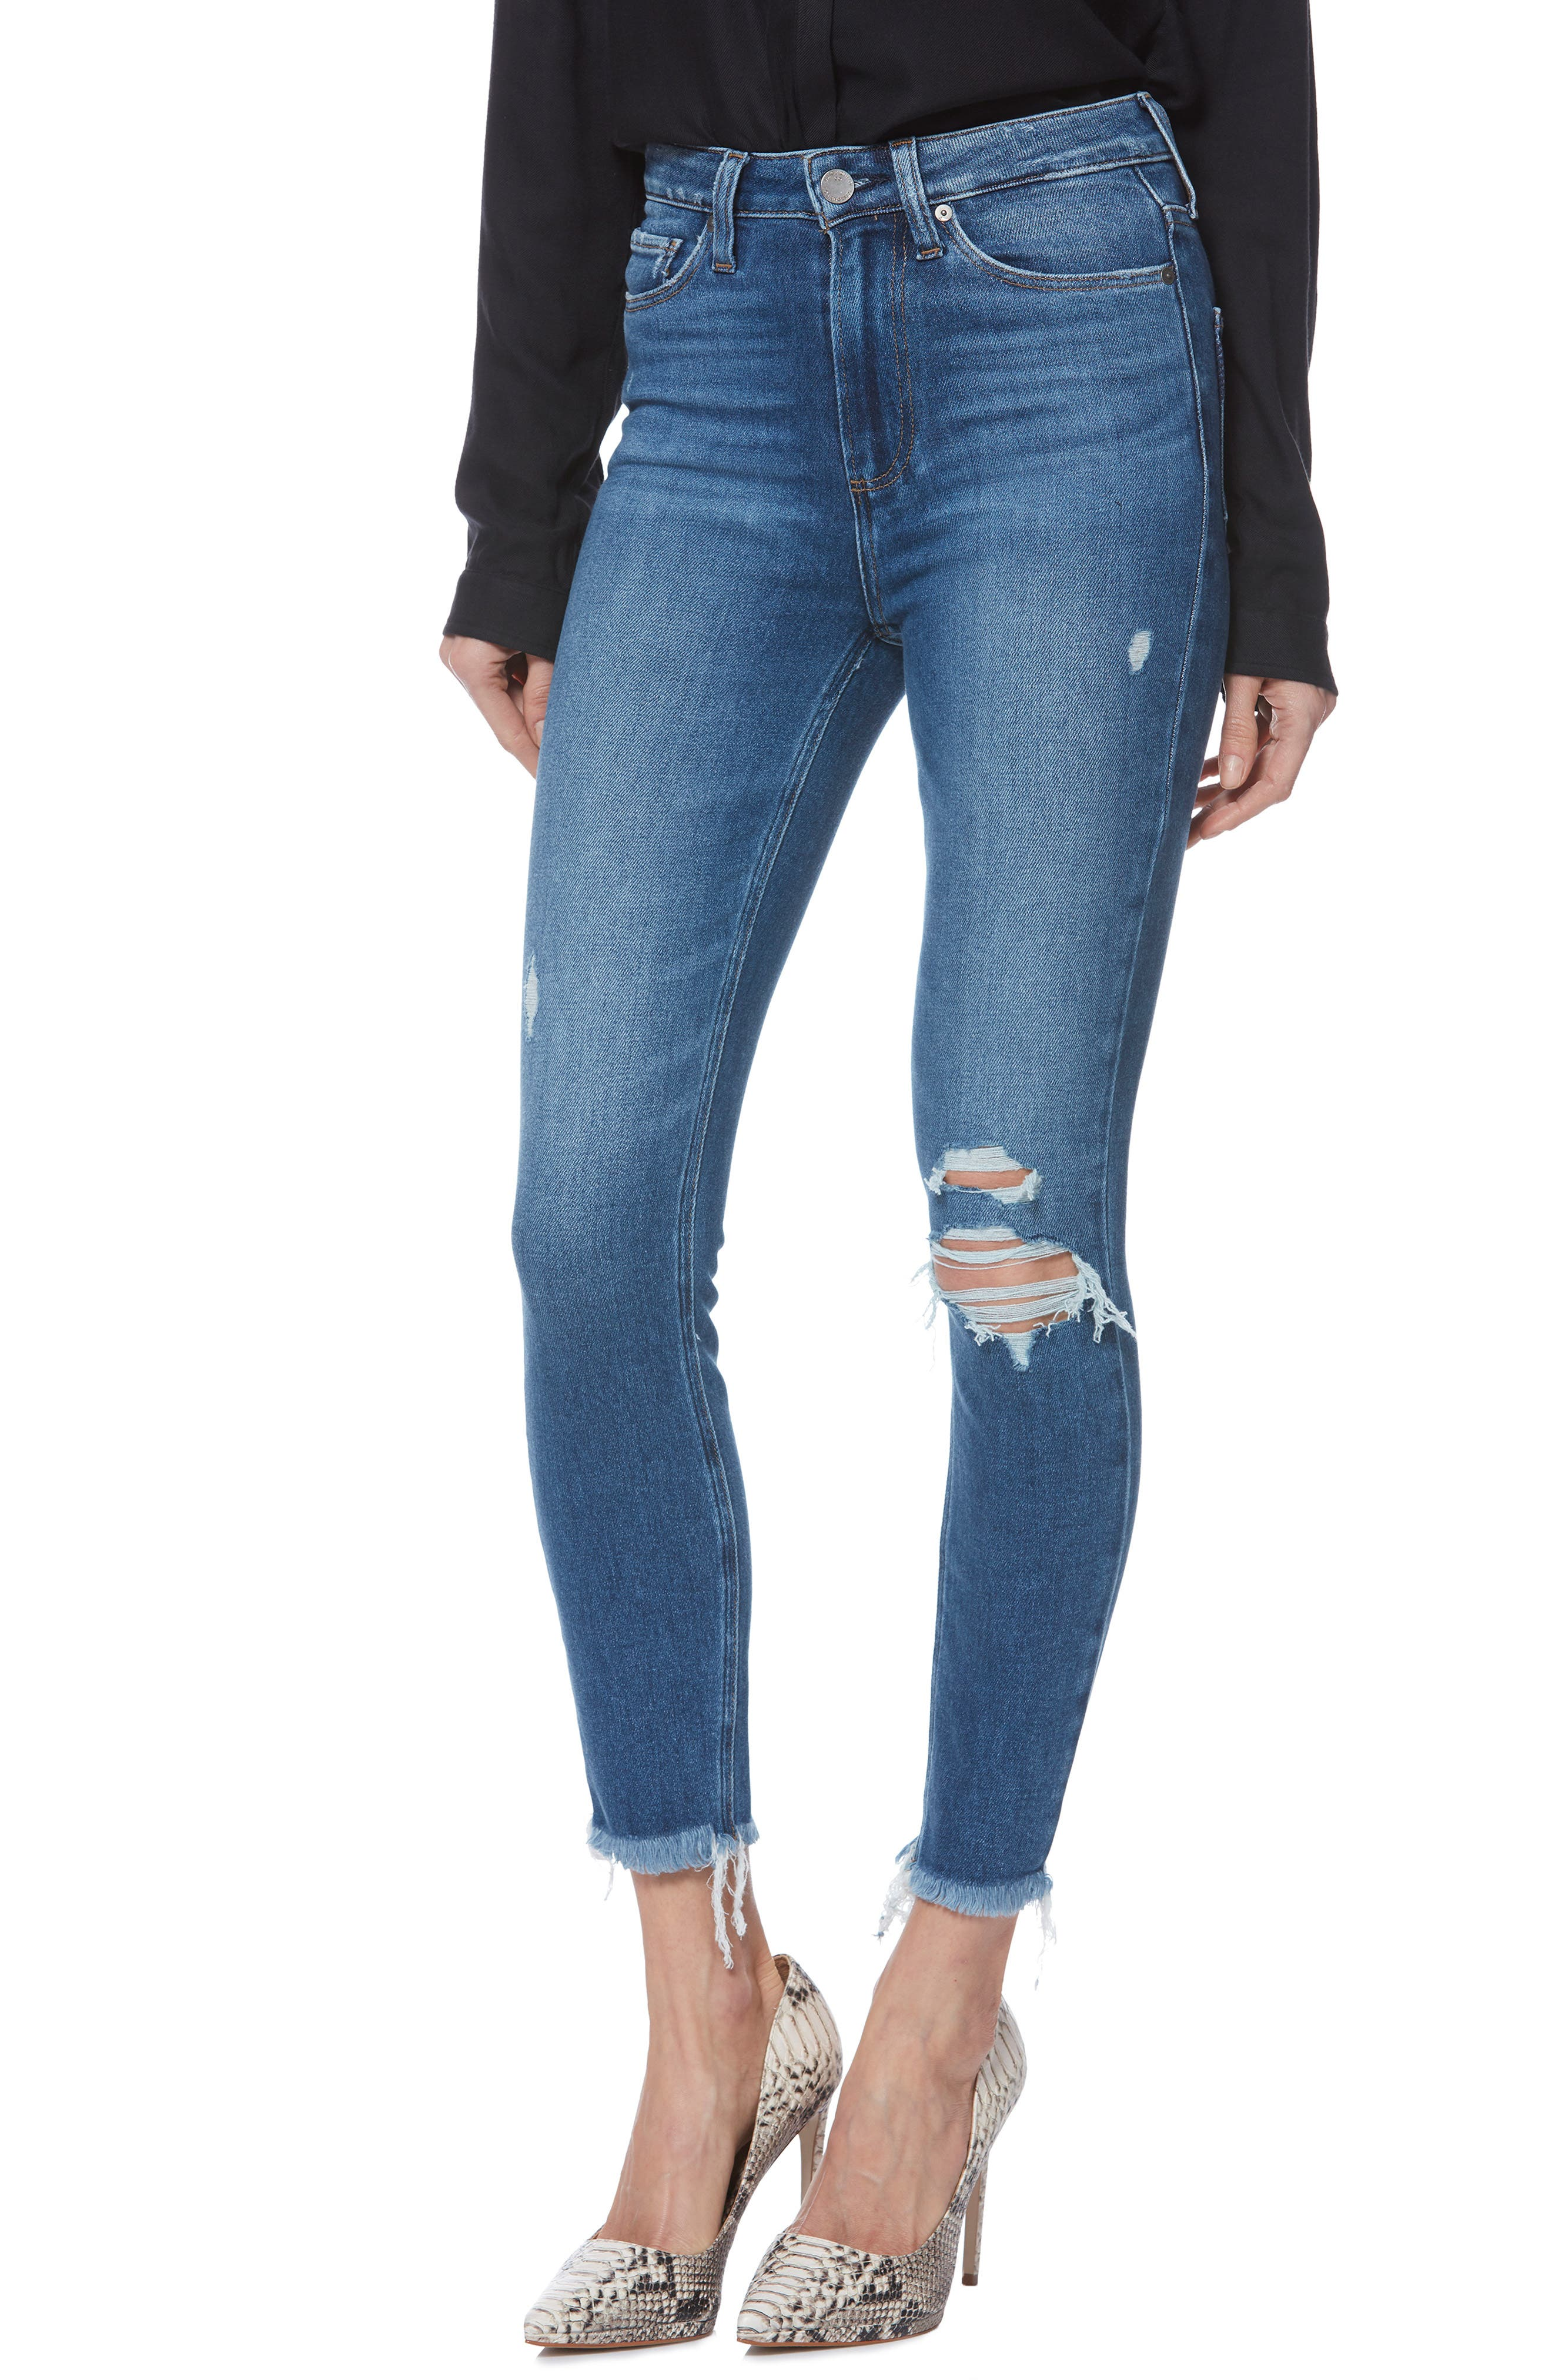 PAIGE Margot High Waist Crop Skinny Jeans, Main, color, ALESSIO DESTRUCTED